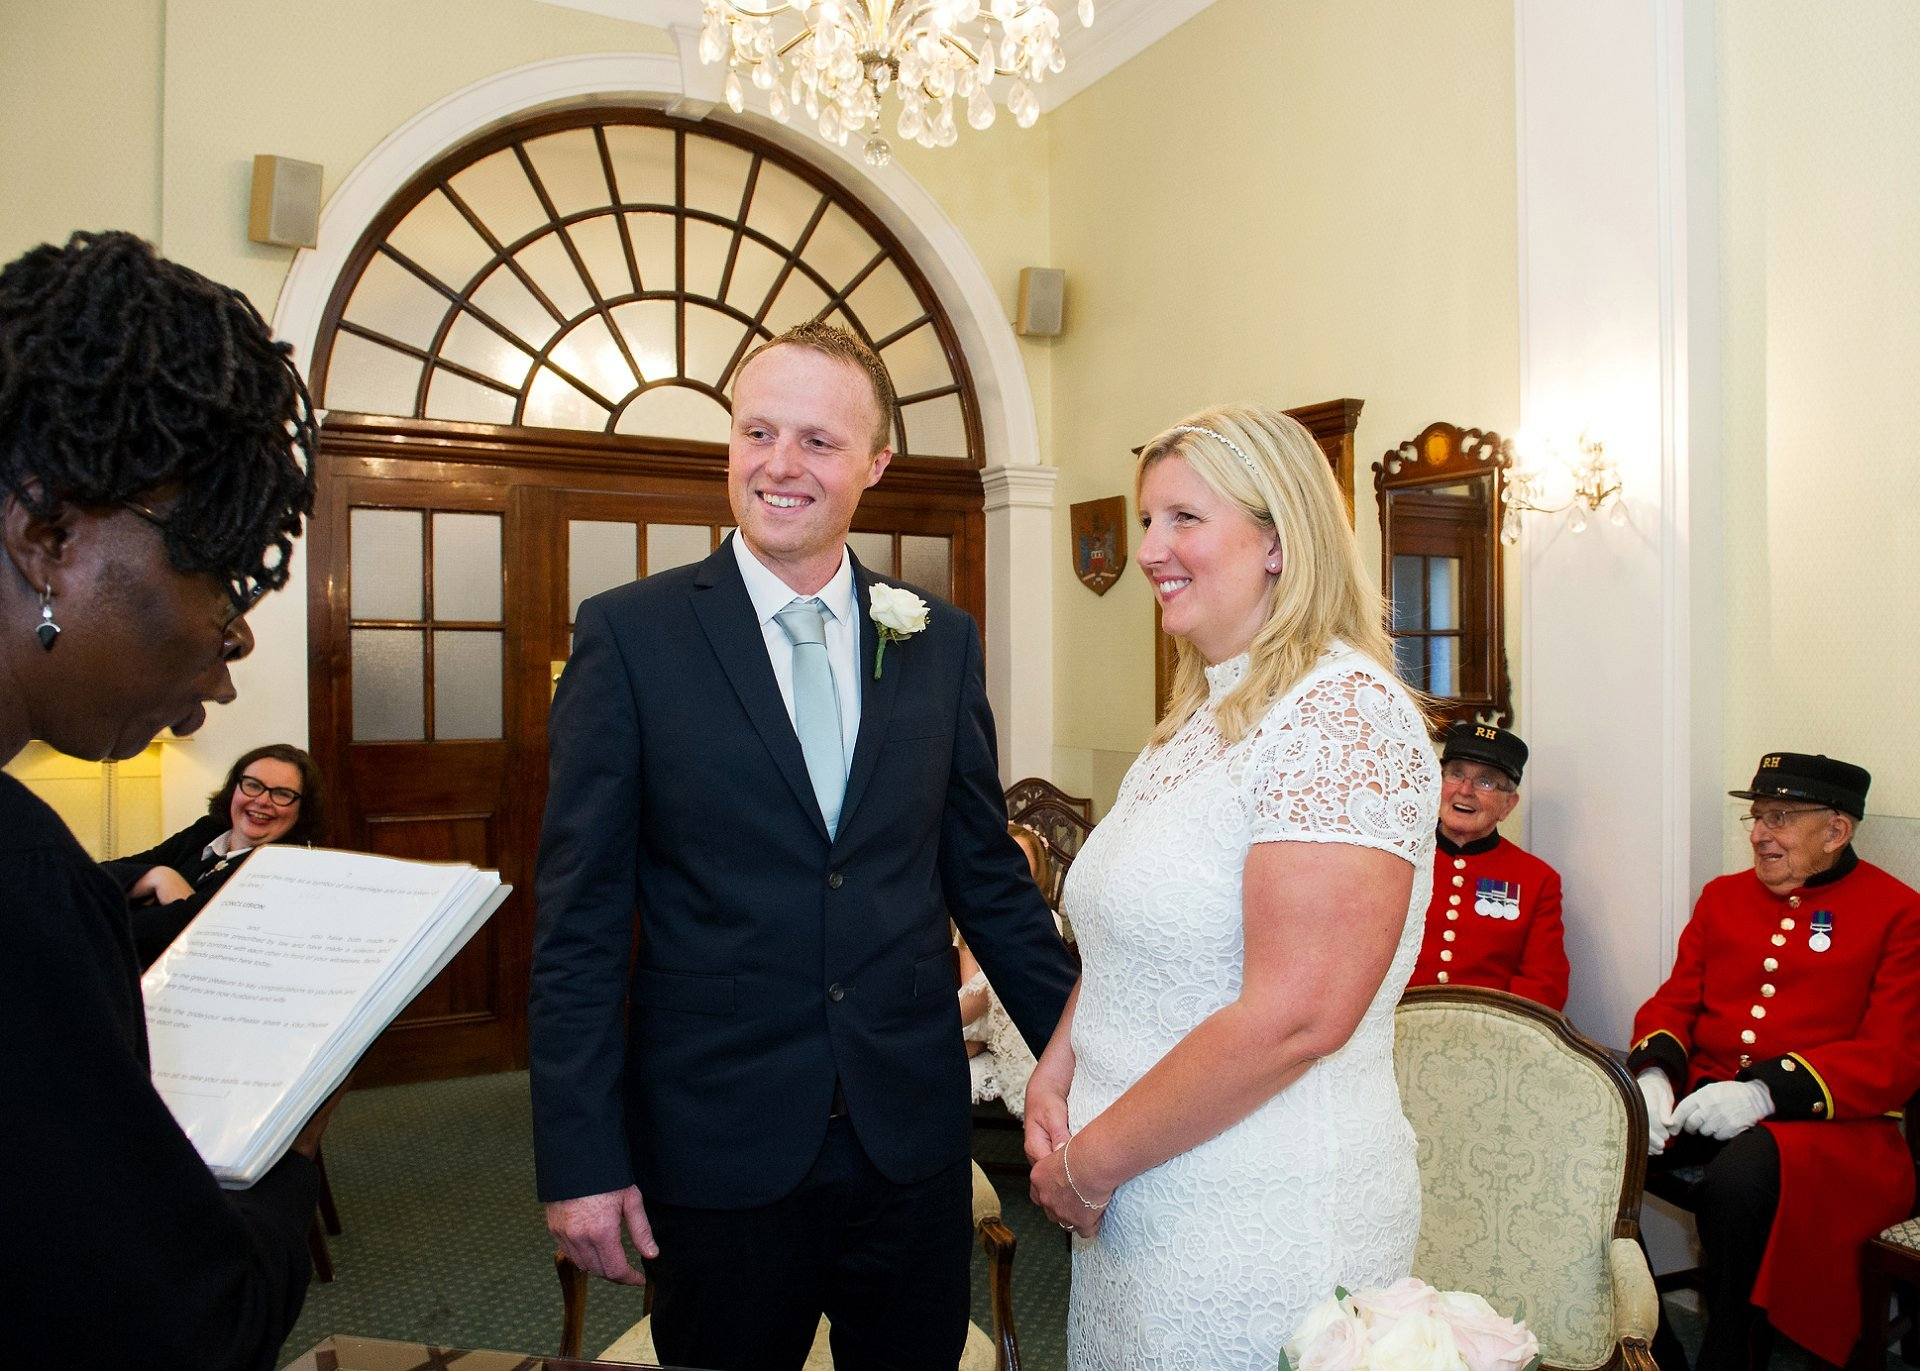 The Registrar from Kensington and Chelsea announces that Leah and Andrew are husband and wife during this amll family wedding at Chelsea Town Hall